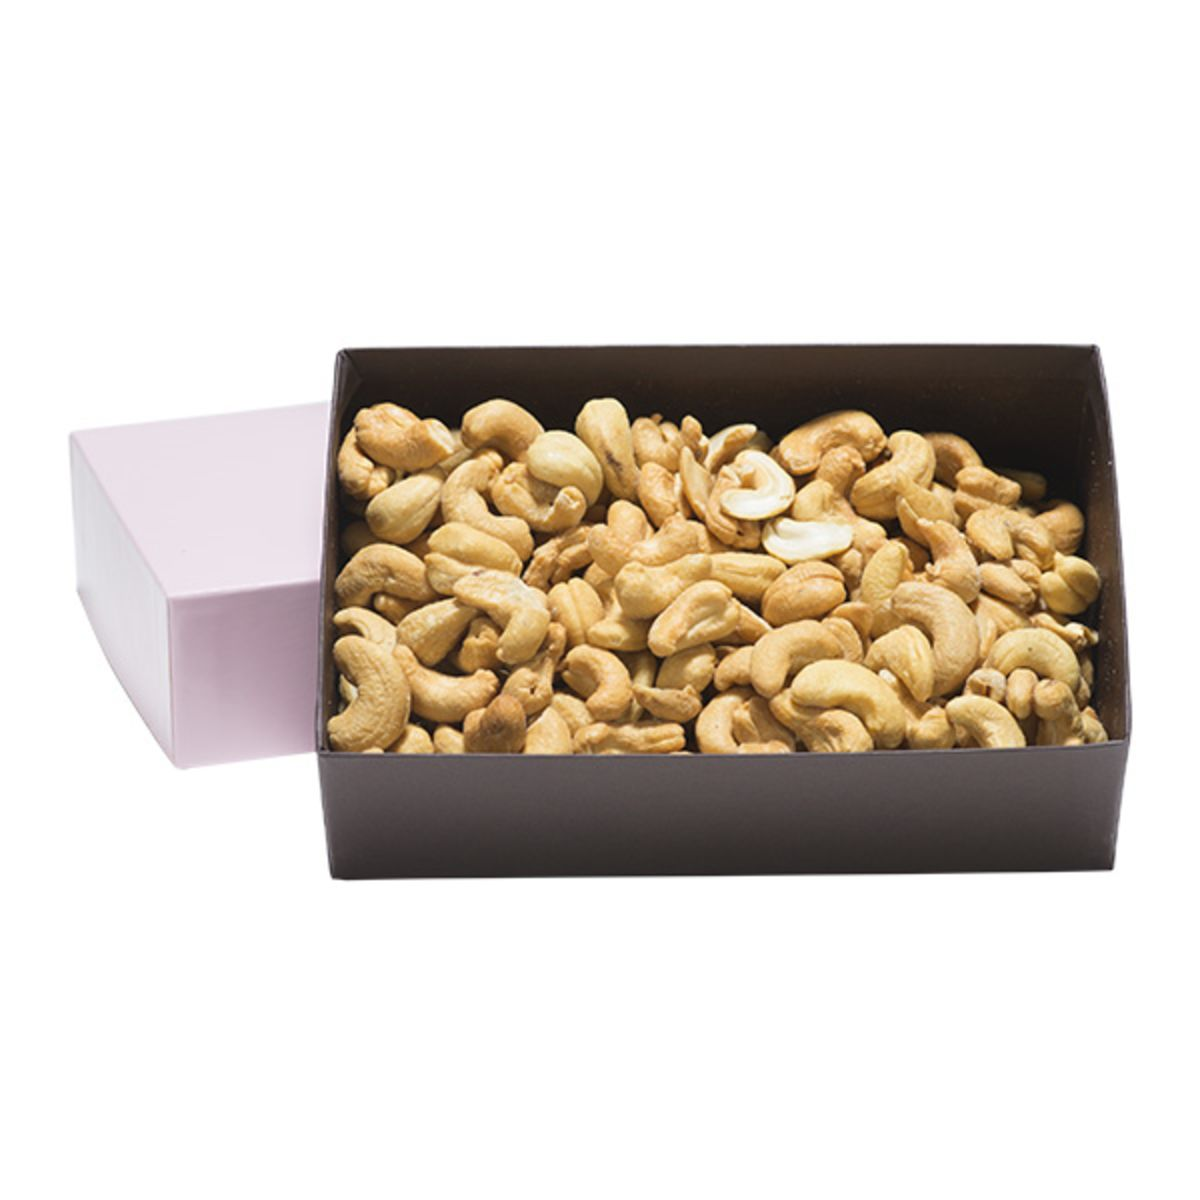 Roasted and Salted Gourmet Cashews